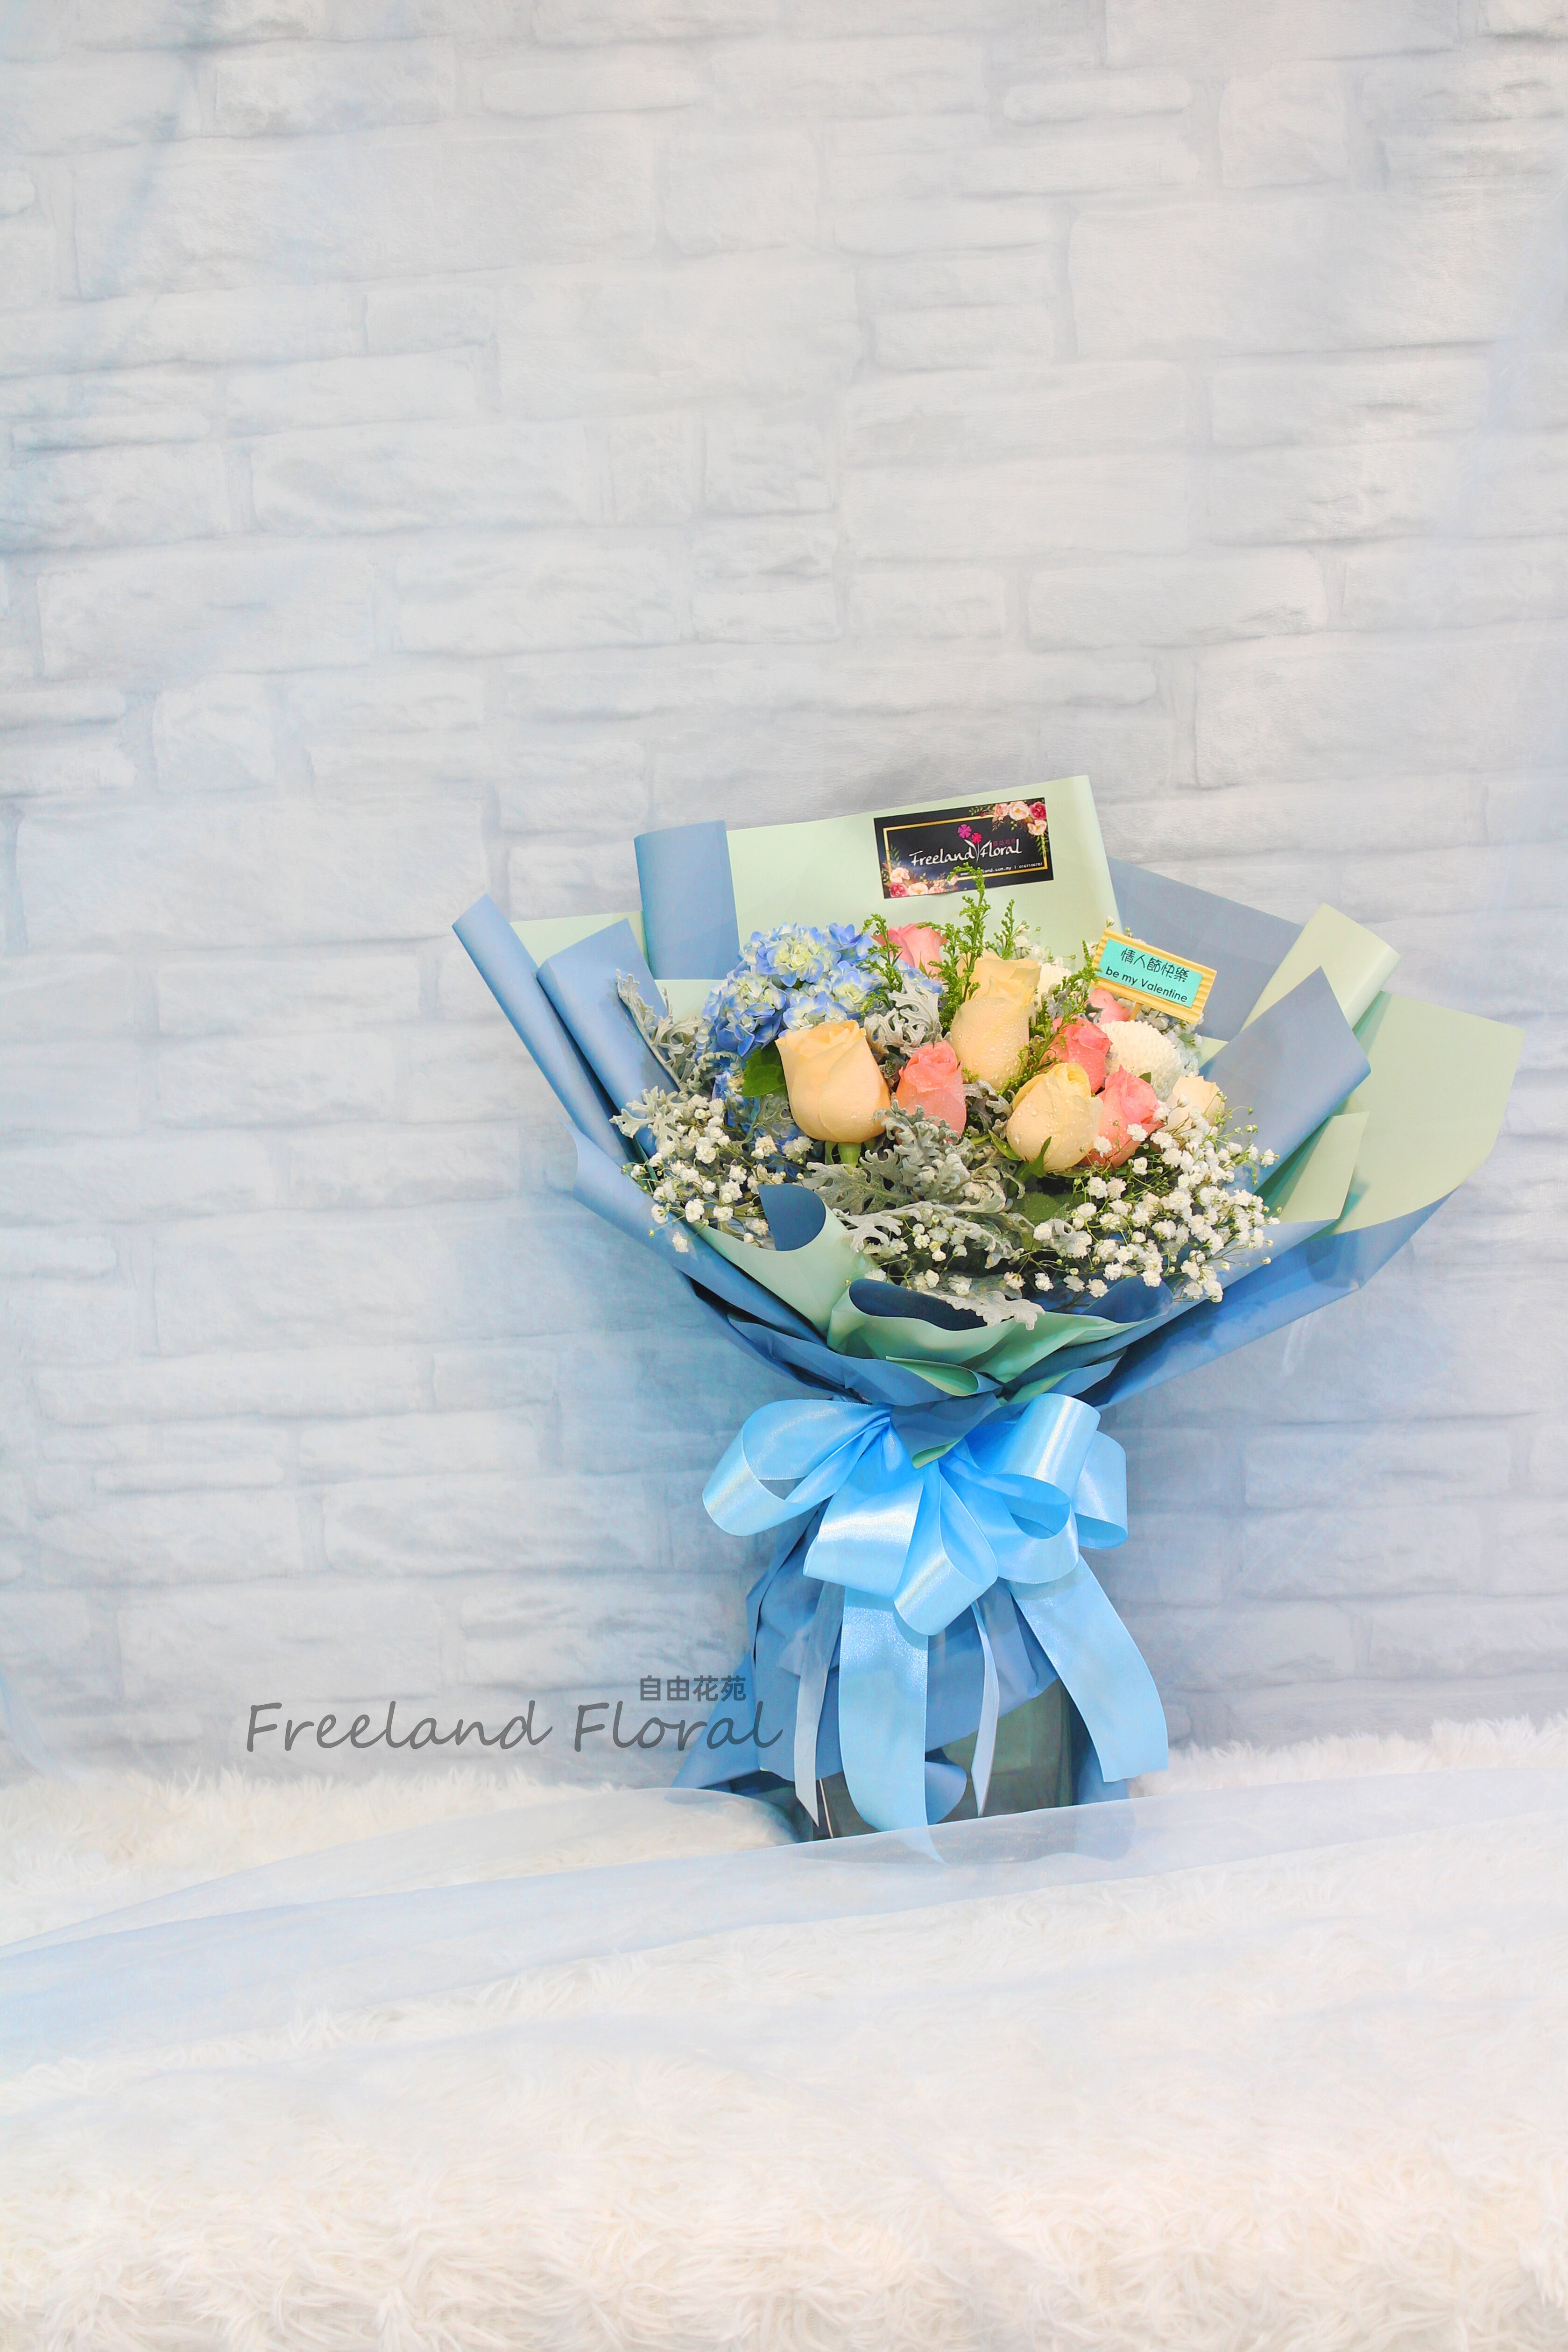 A Thousand Years - Freeland Floral 自由花苑